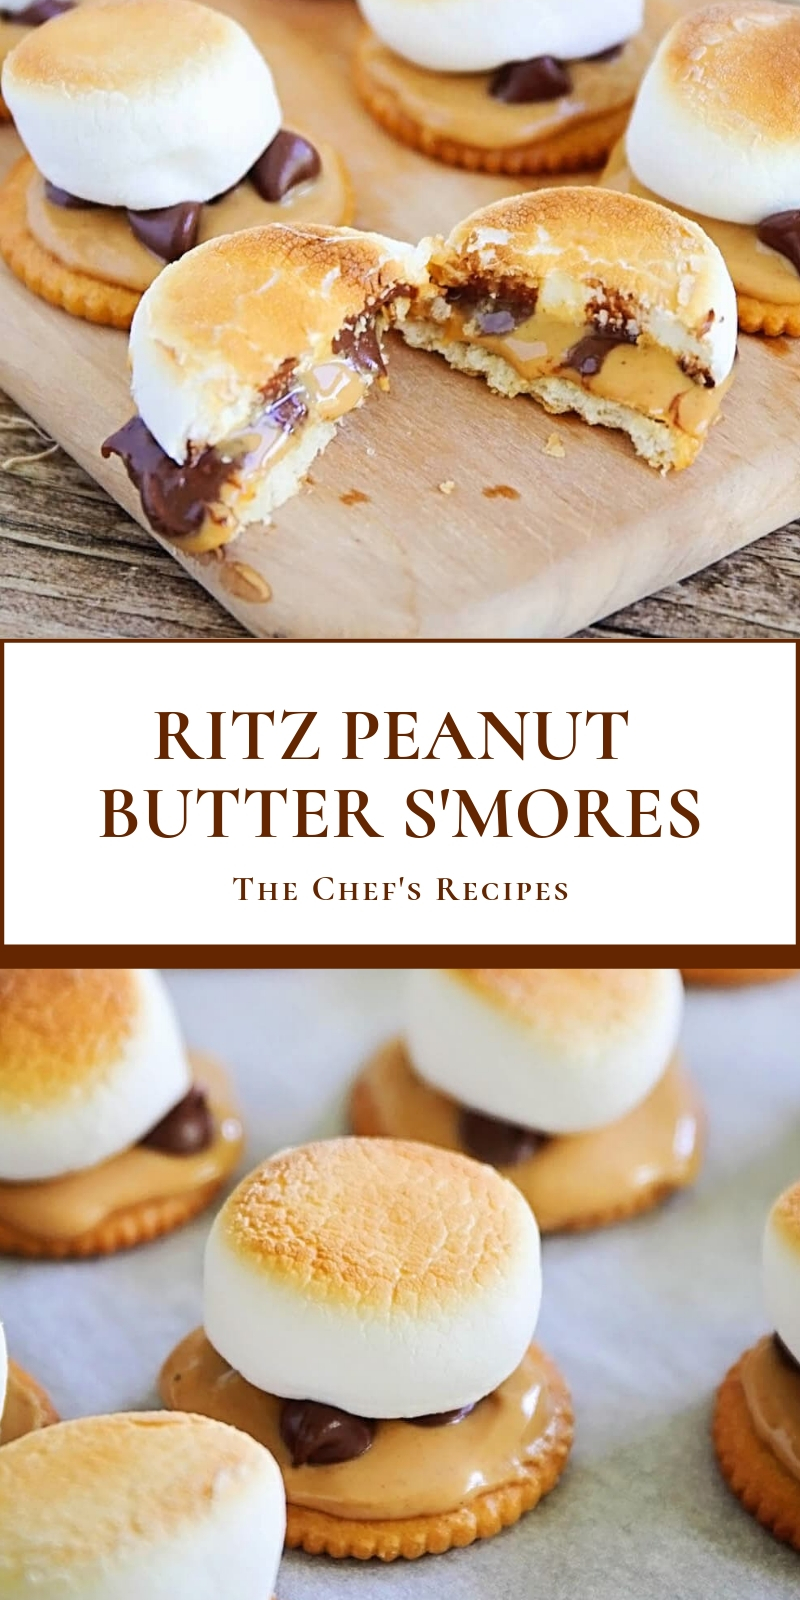 RITZ PEANUT BUTTER S'MORES